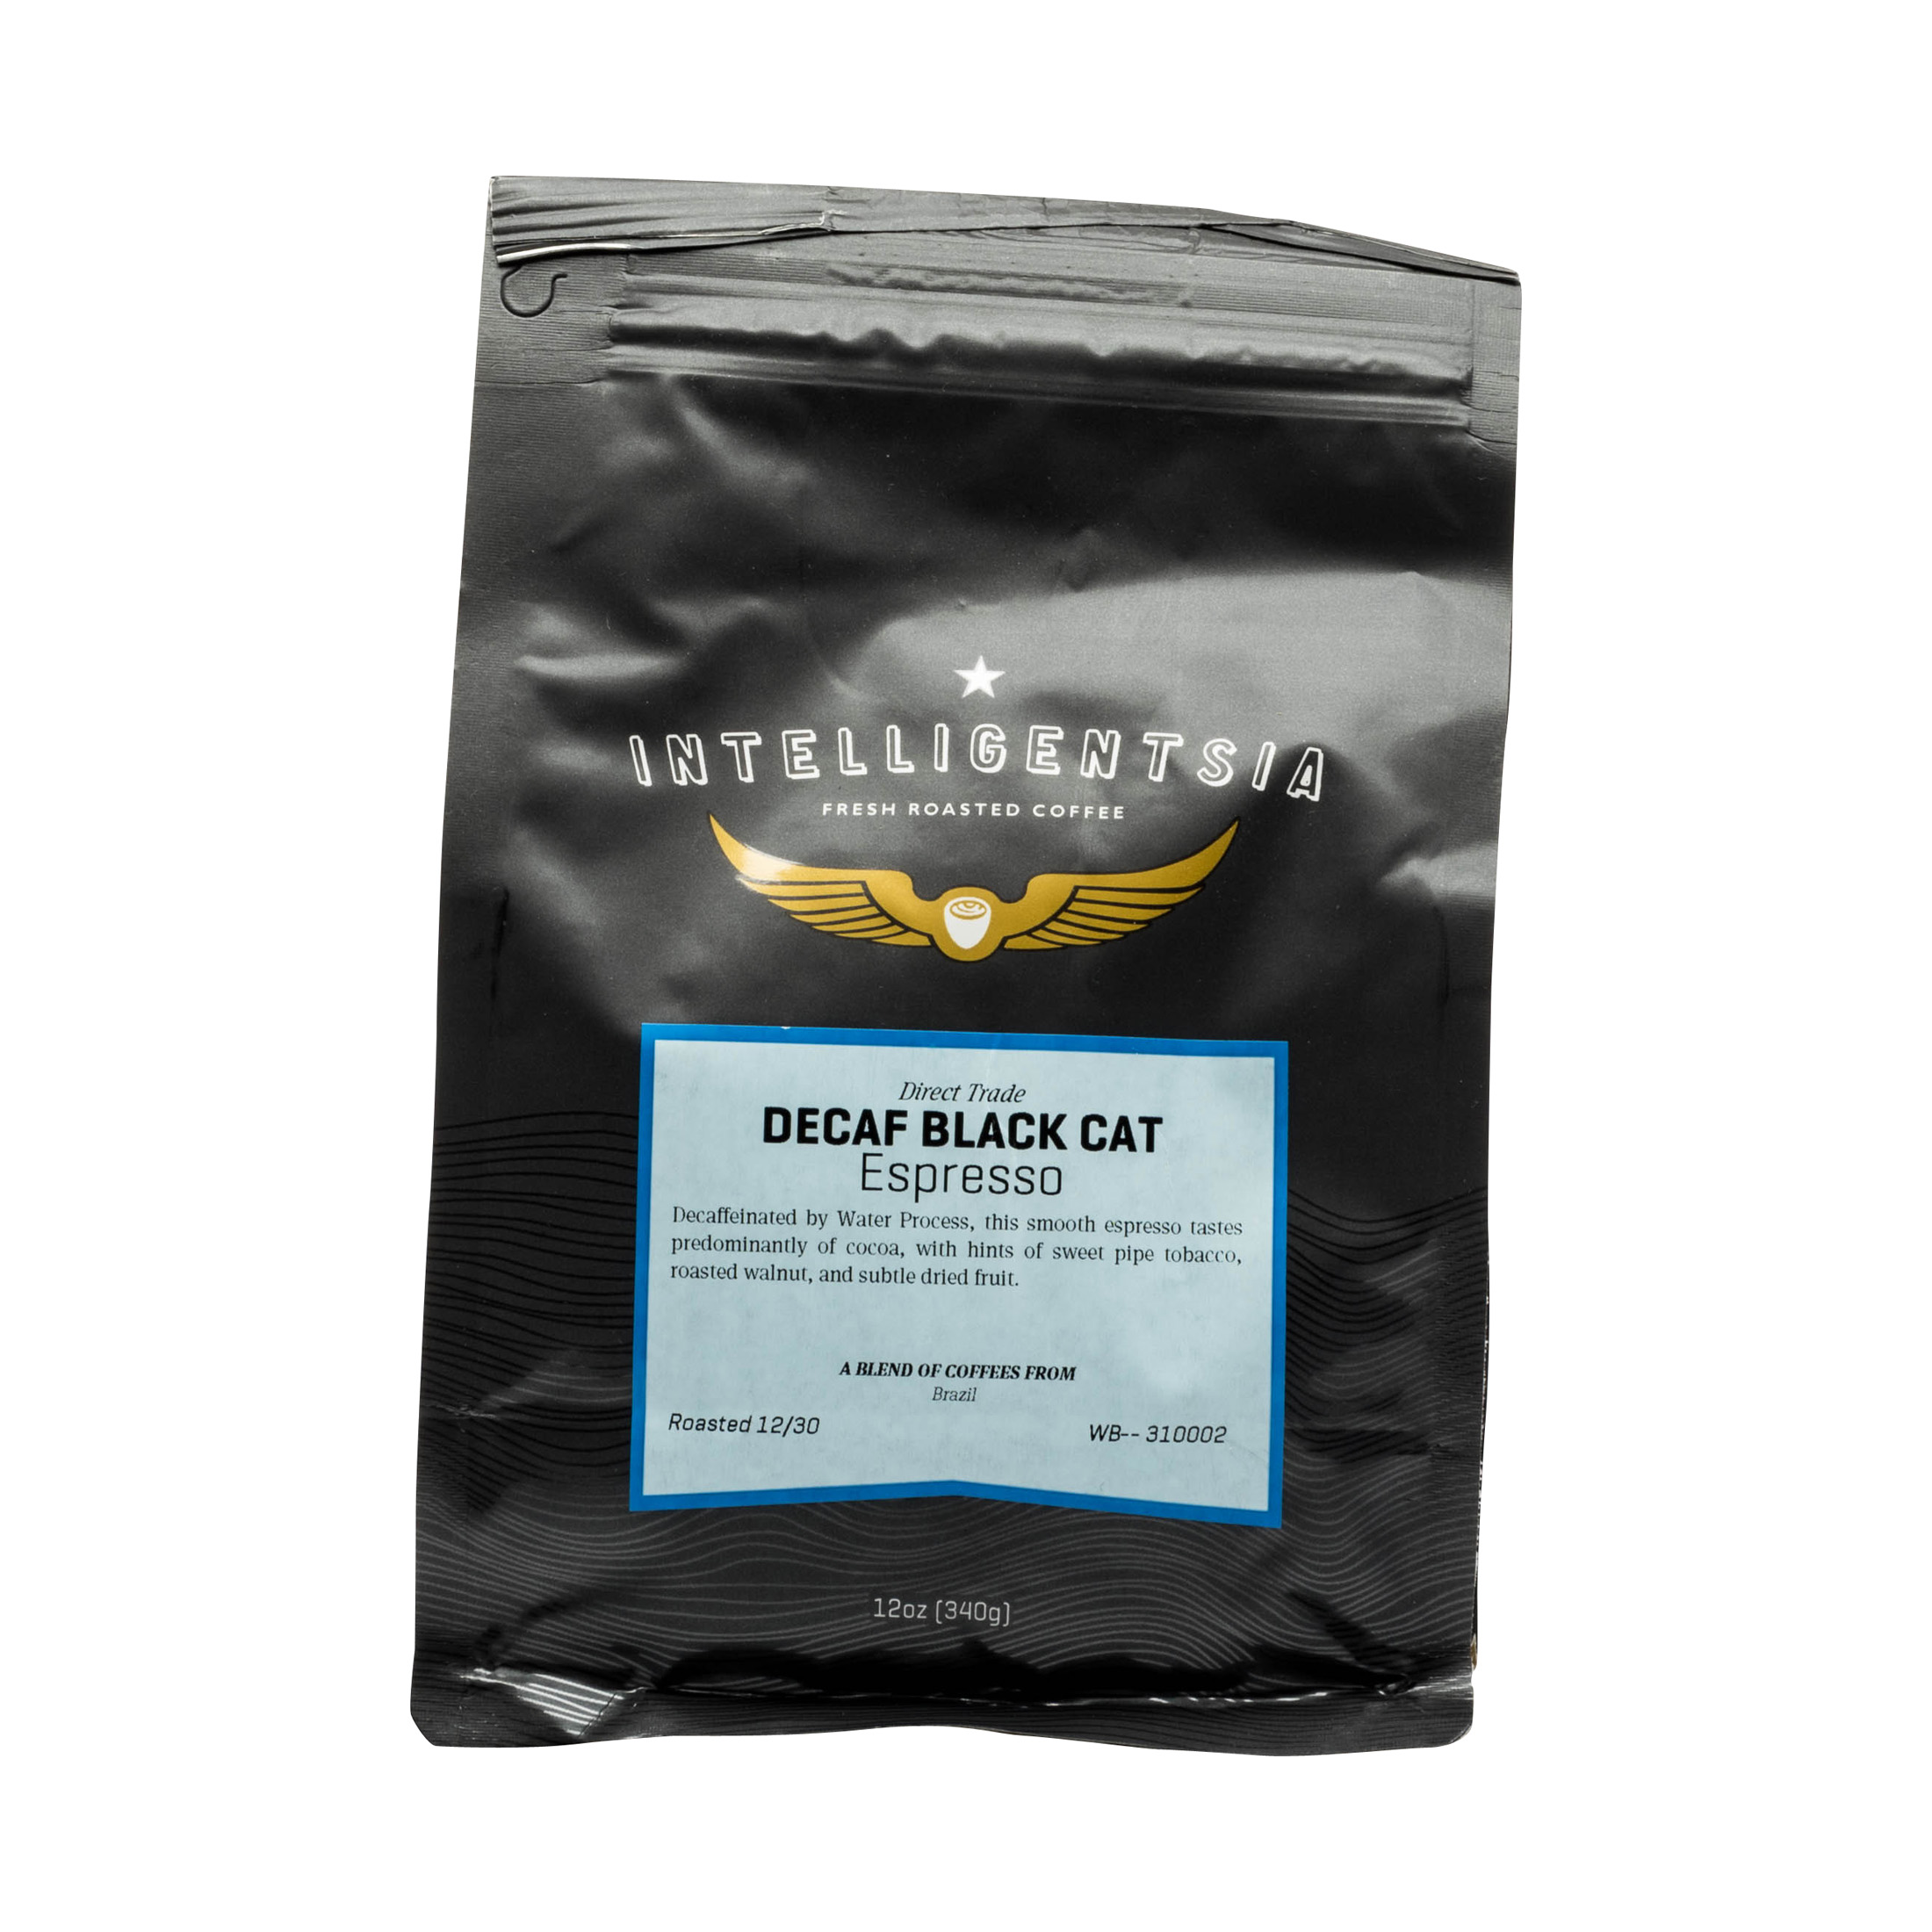 DECAF BLACK CAT ESPRESSO